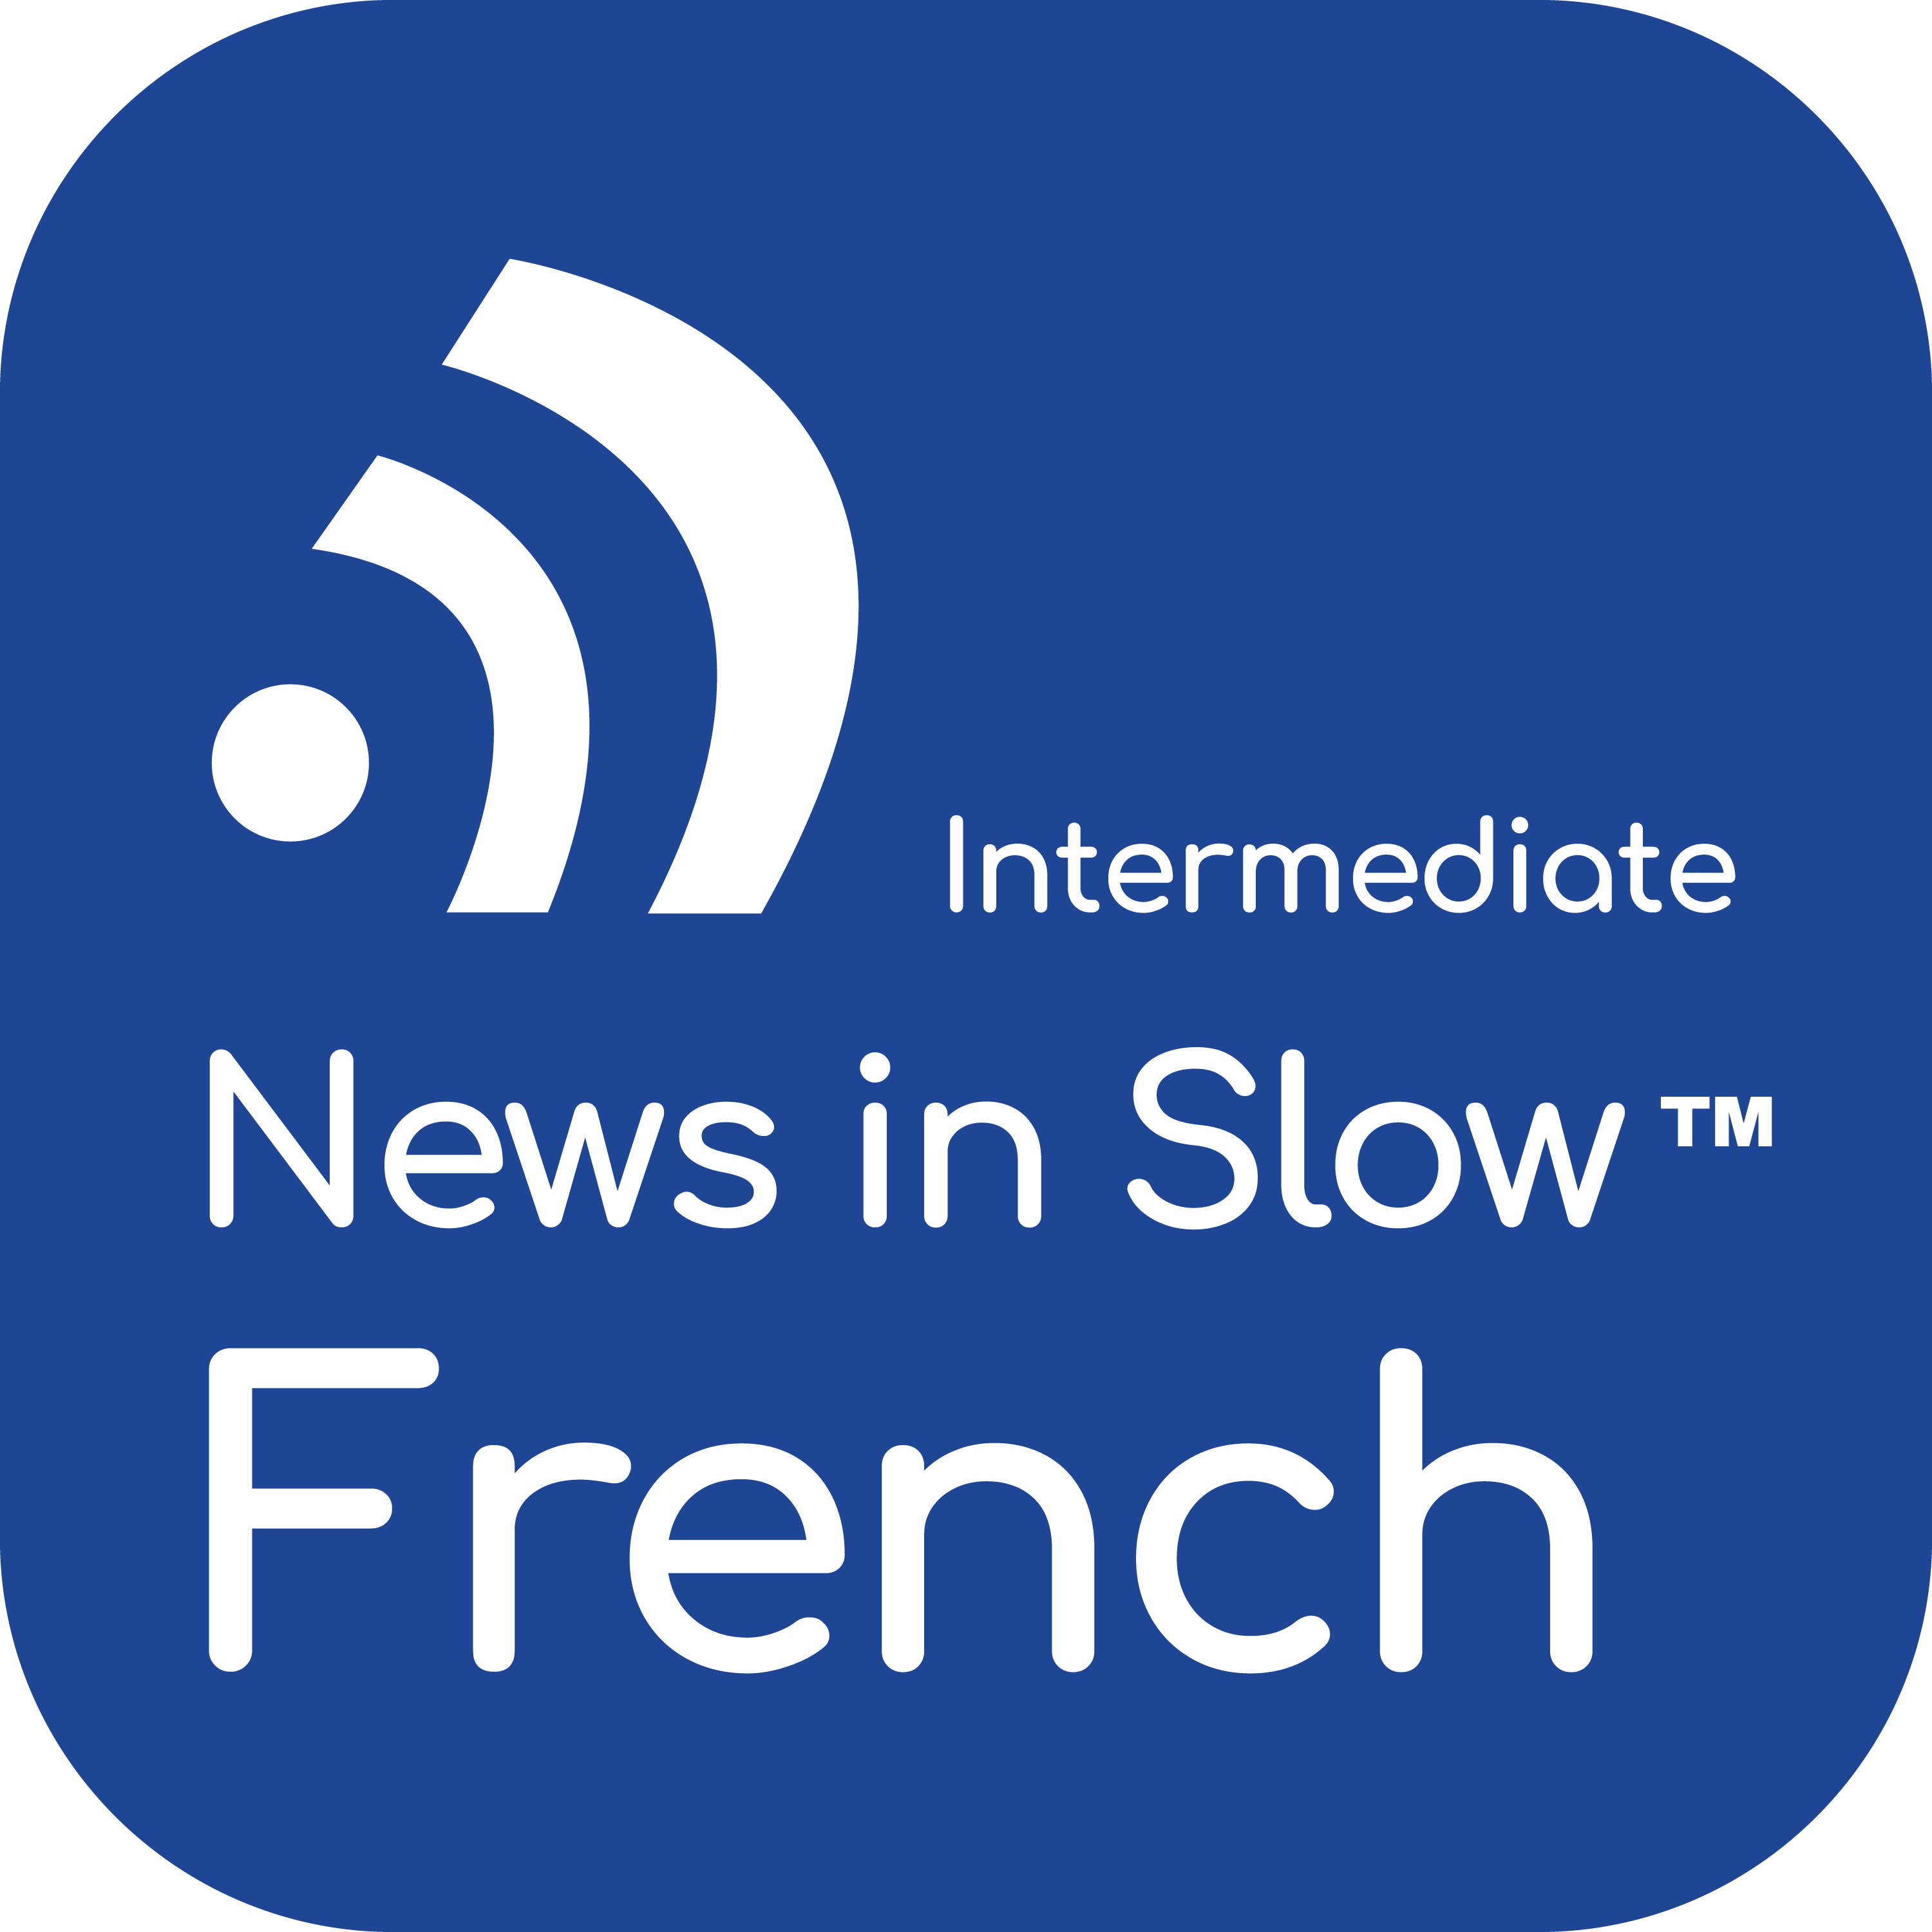 News in Slow French #503- Easy French Conversation about Current Events